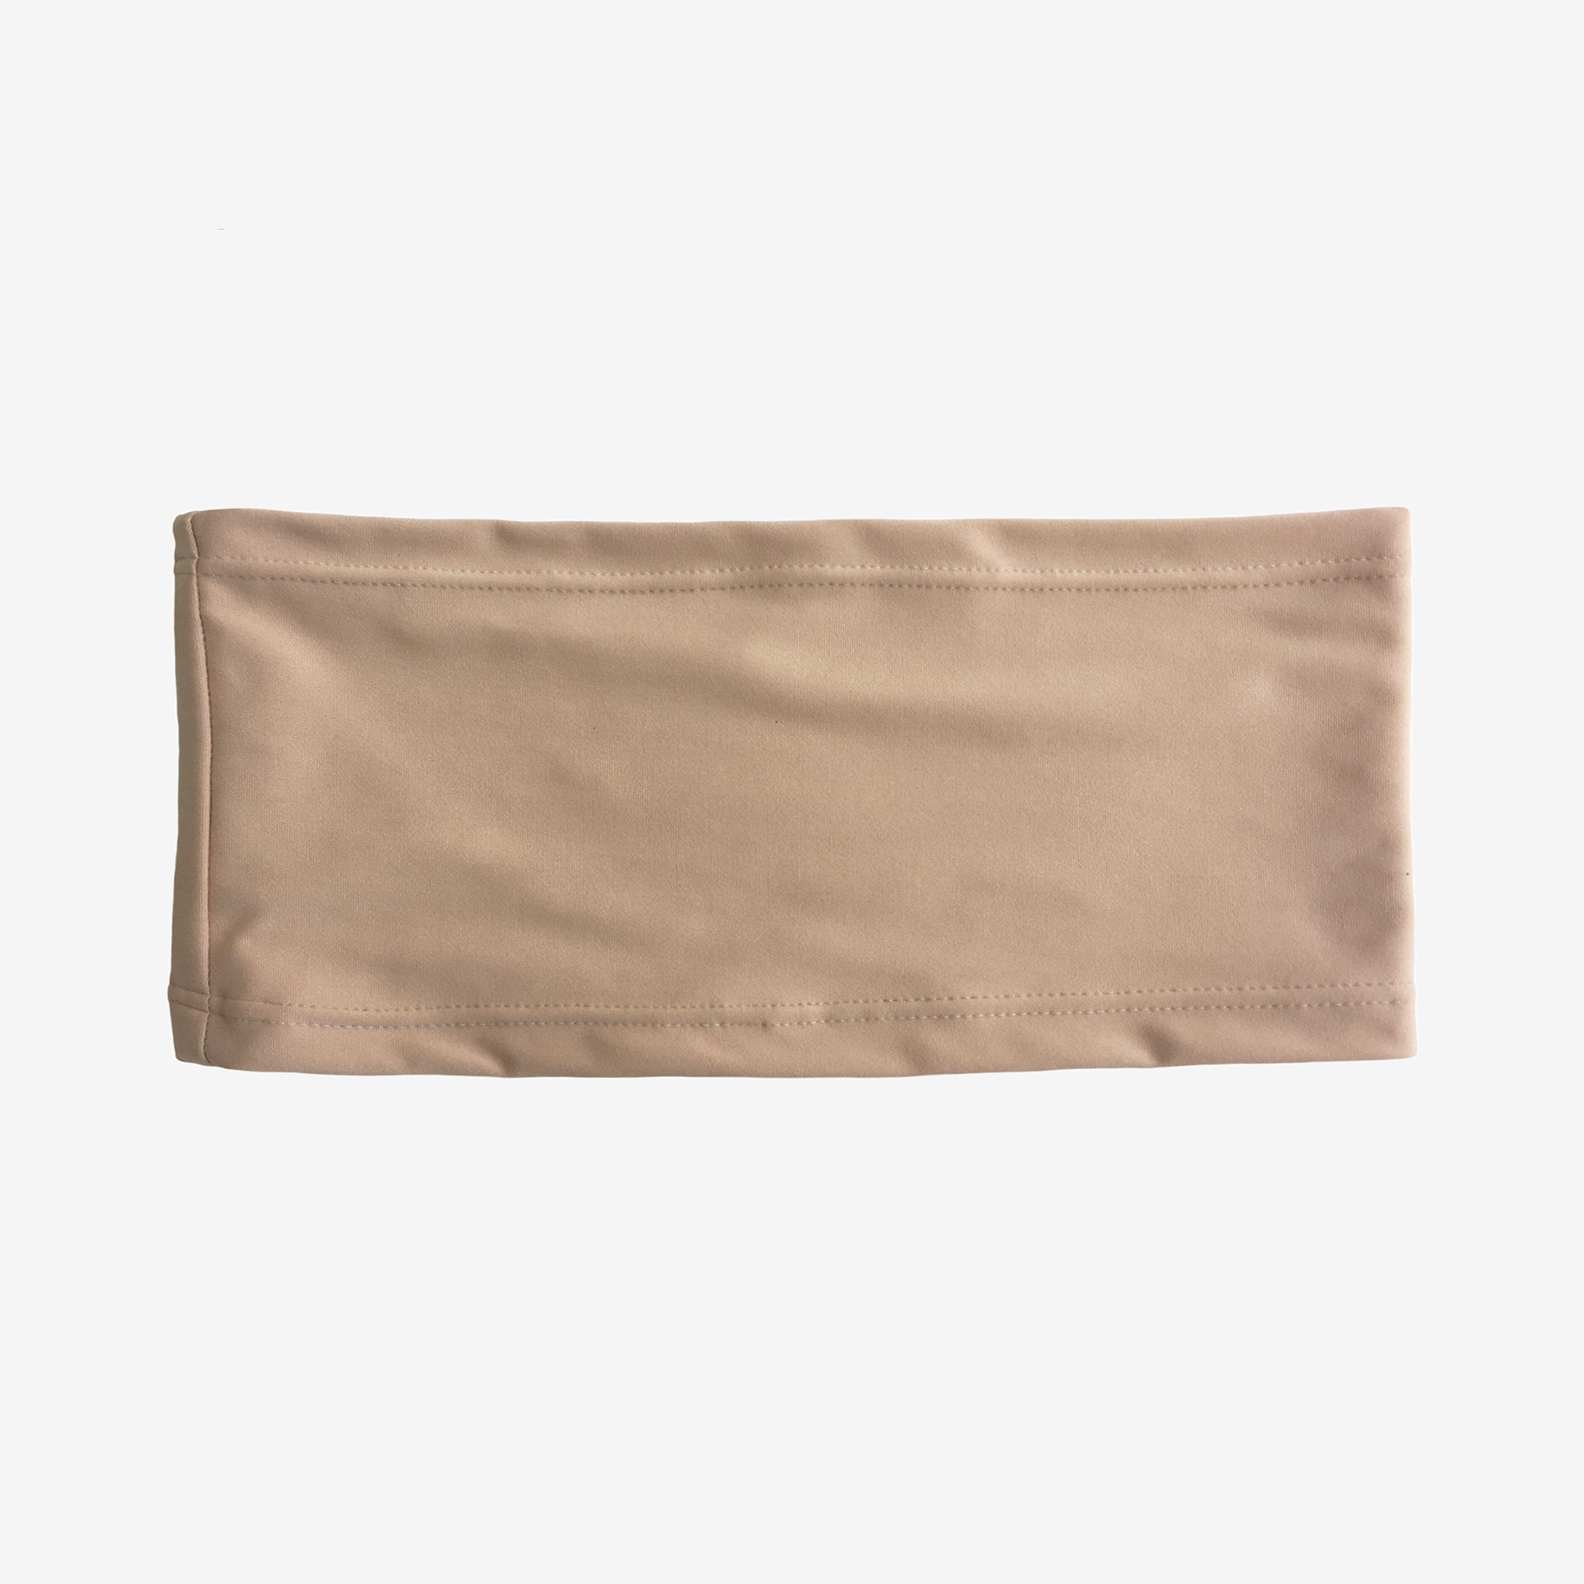 Beige stretch waistband with mild compression for ostomy, recovery